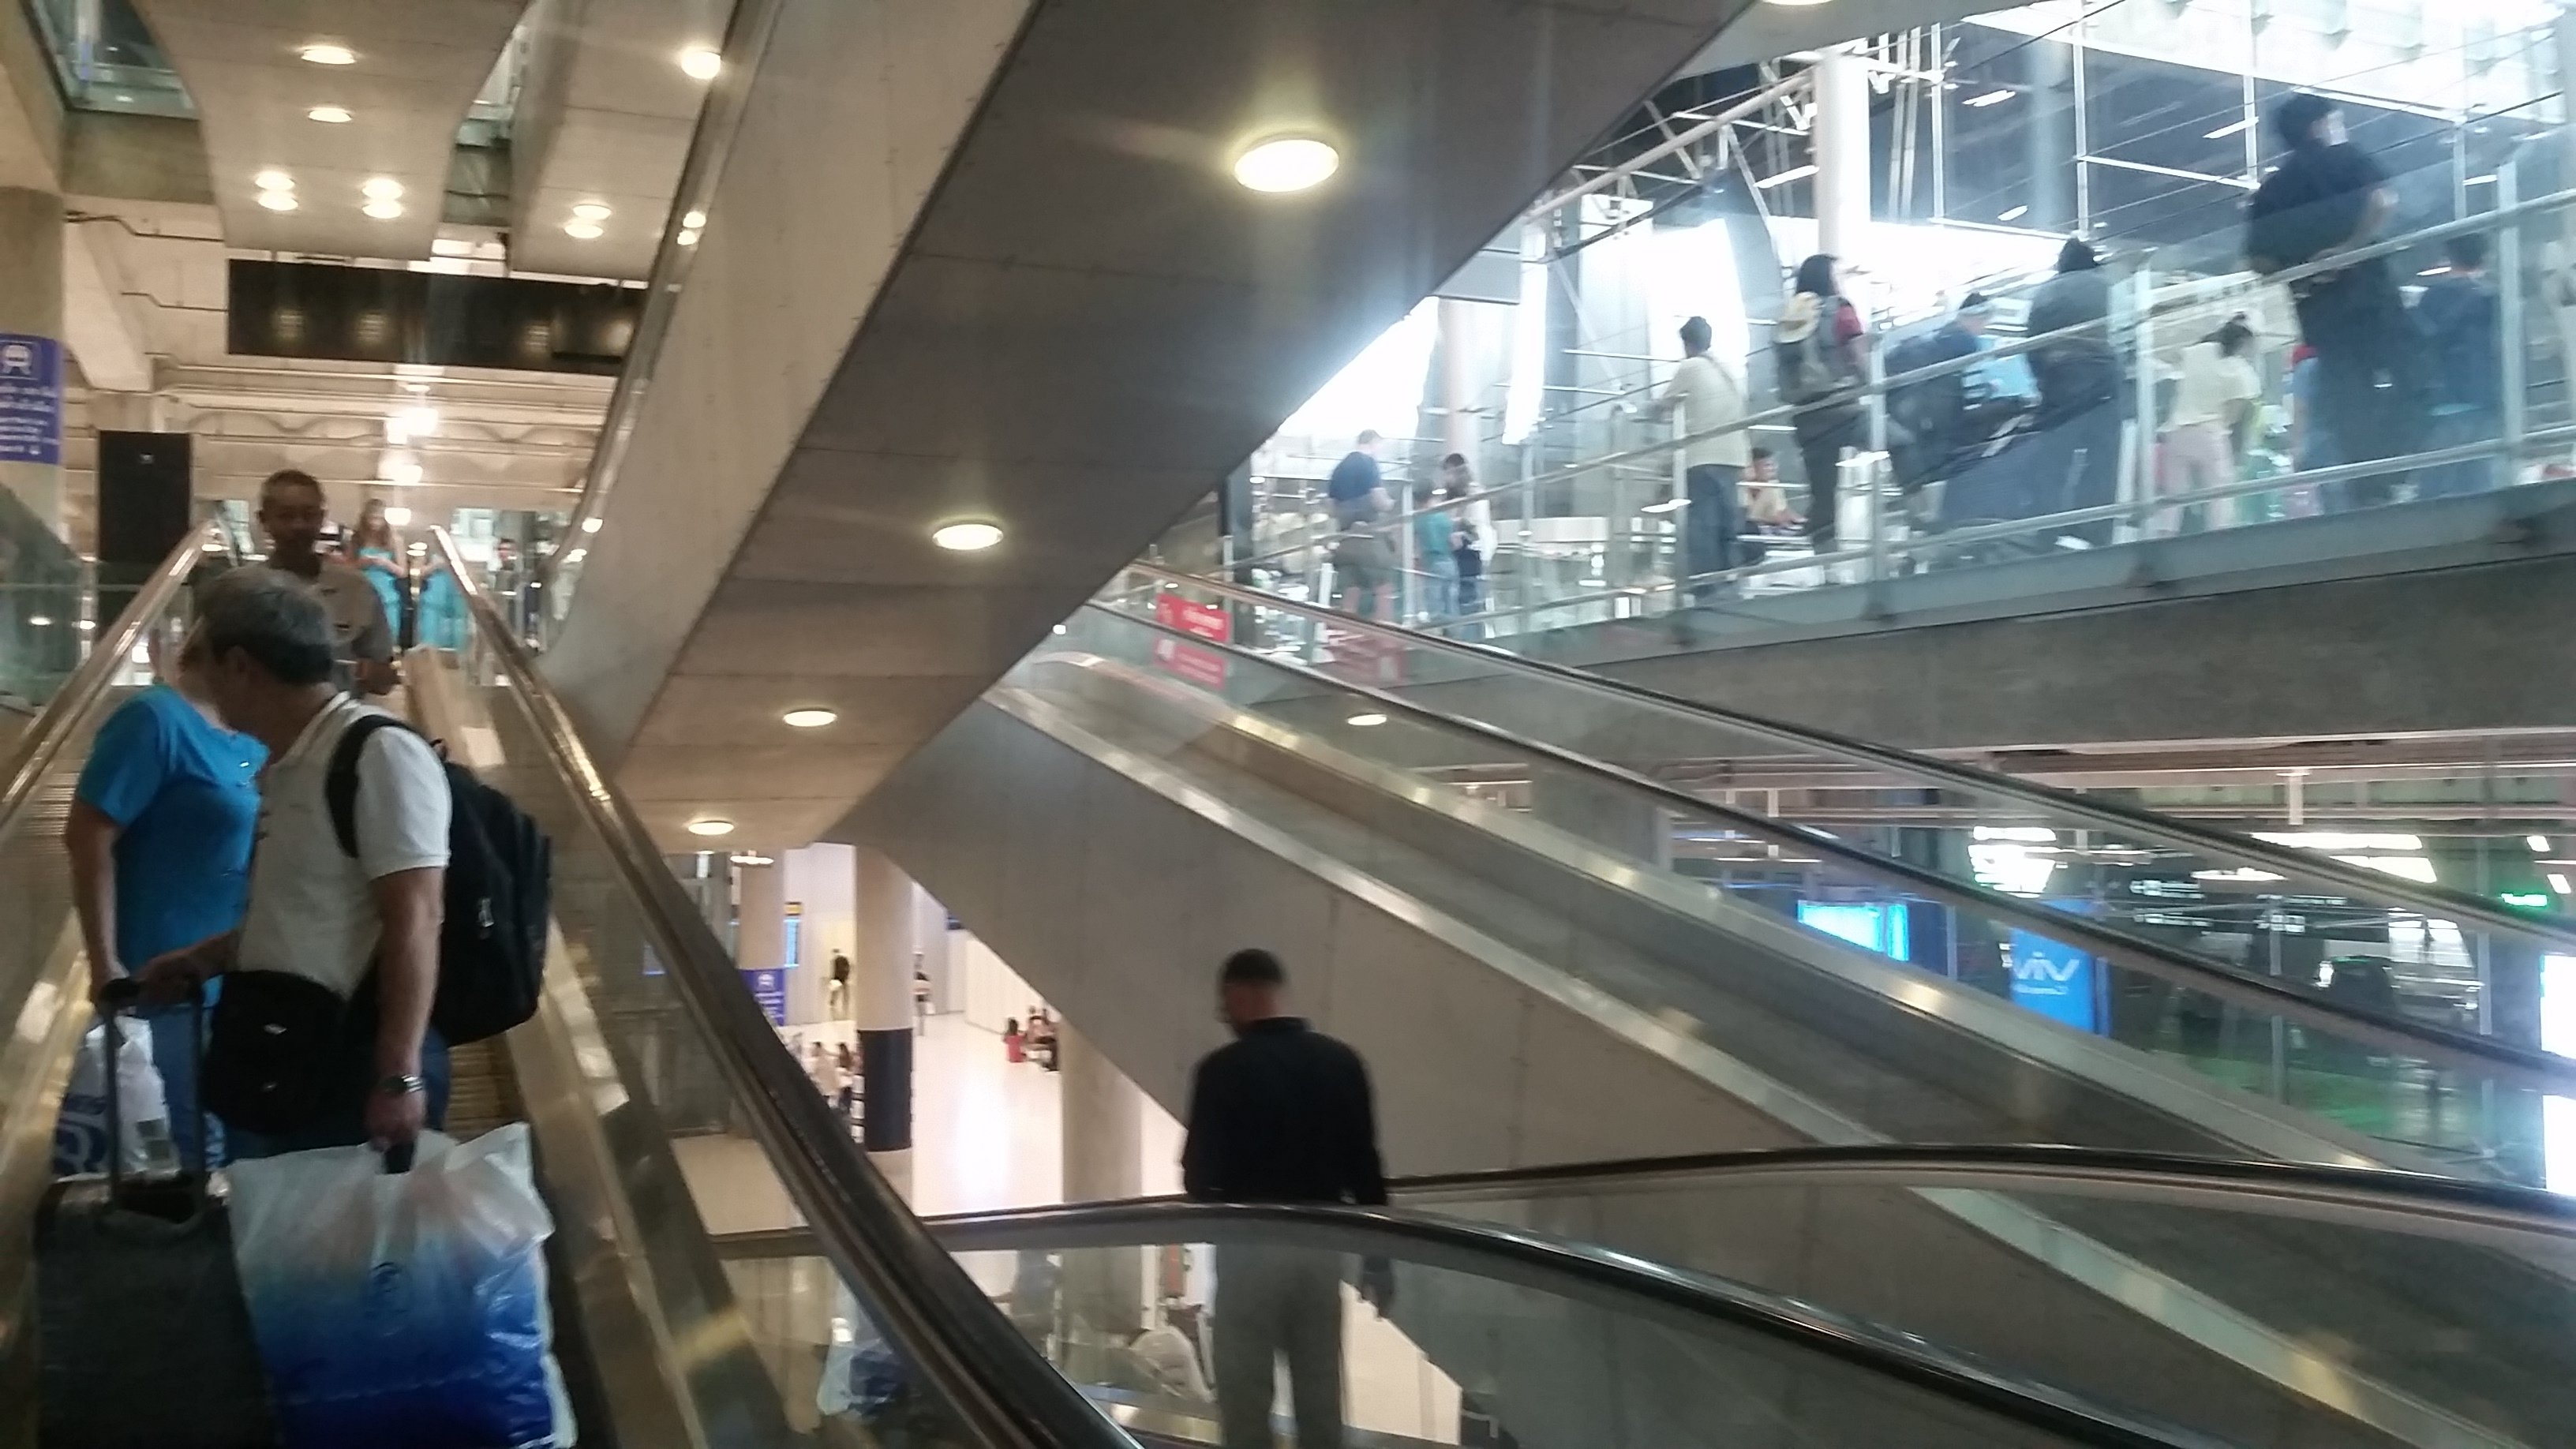 Taking the escalator down to the Airport Rail Link.